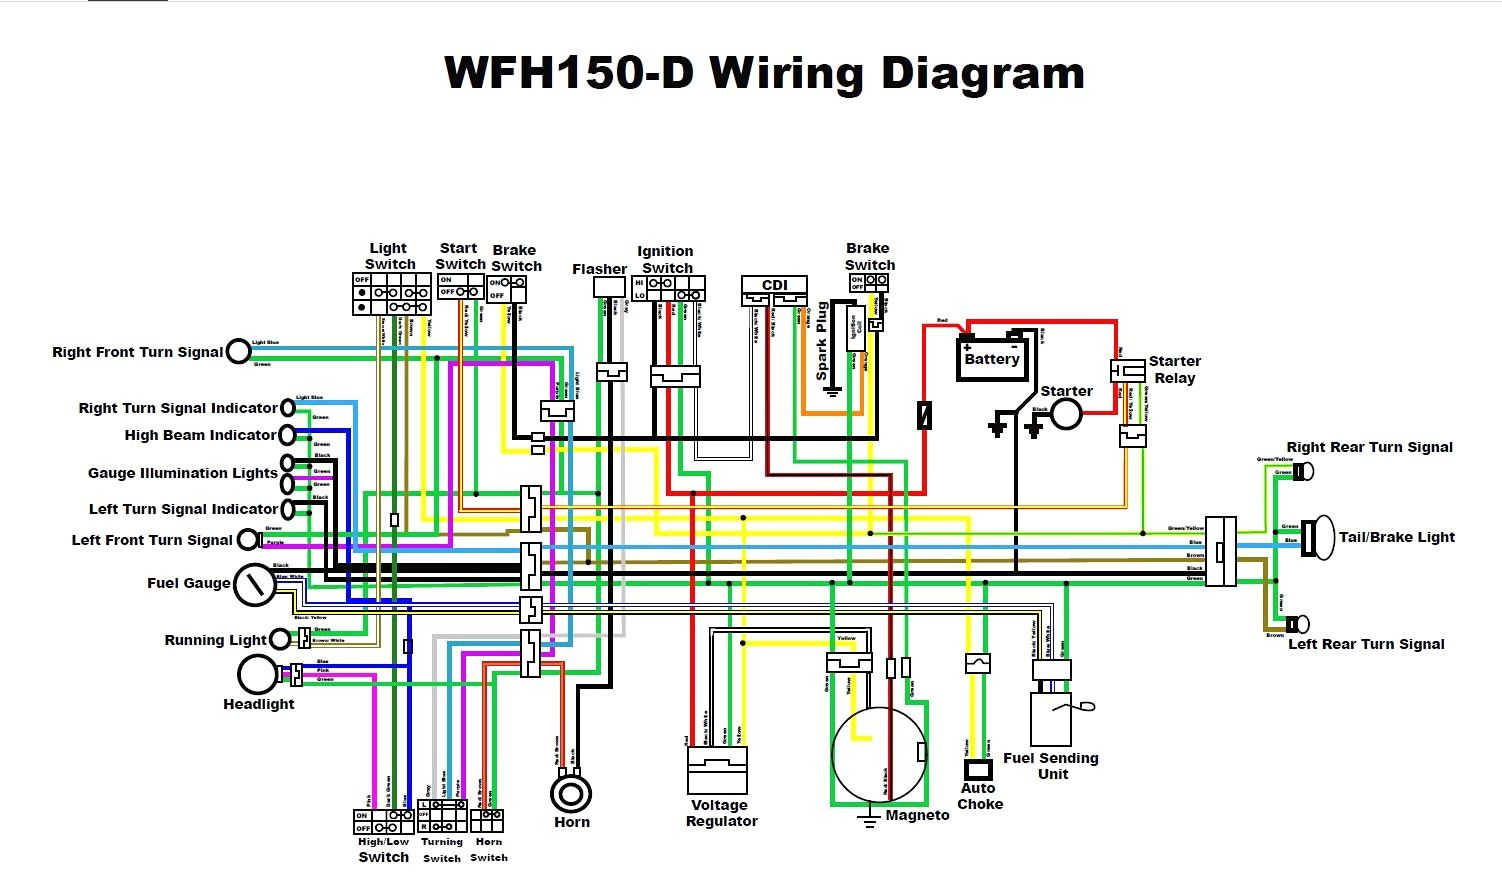 Gy6 150 Wiring Diagram Diagrams Schematics And 150Cc Hbphelp Me New |  Electrical diagram, 150cc go kart, 150cc scooter | Gy6 150cc Buggy Wiring Diagram |  | Pinterest